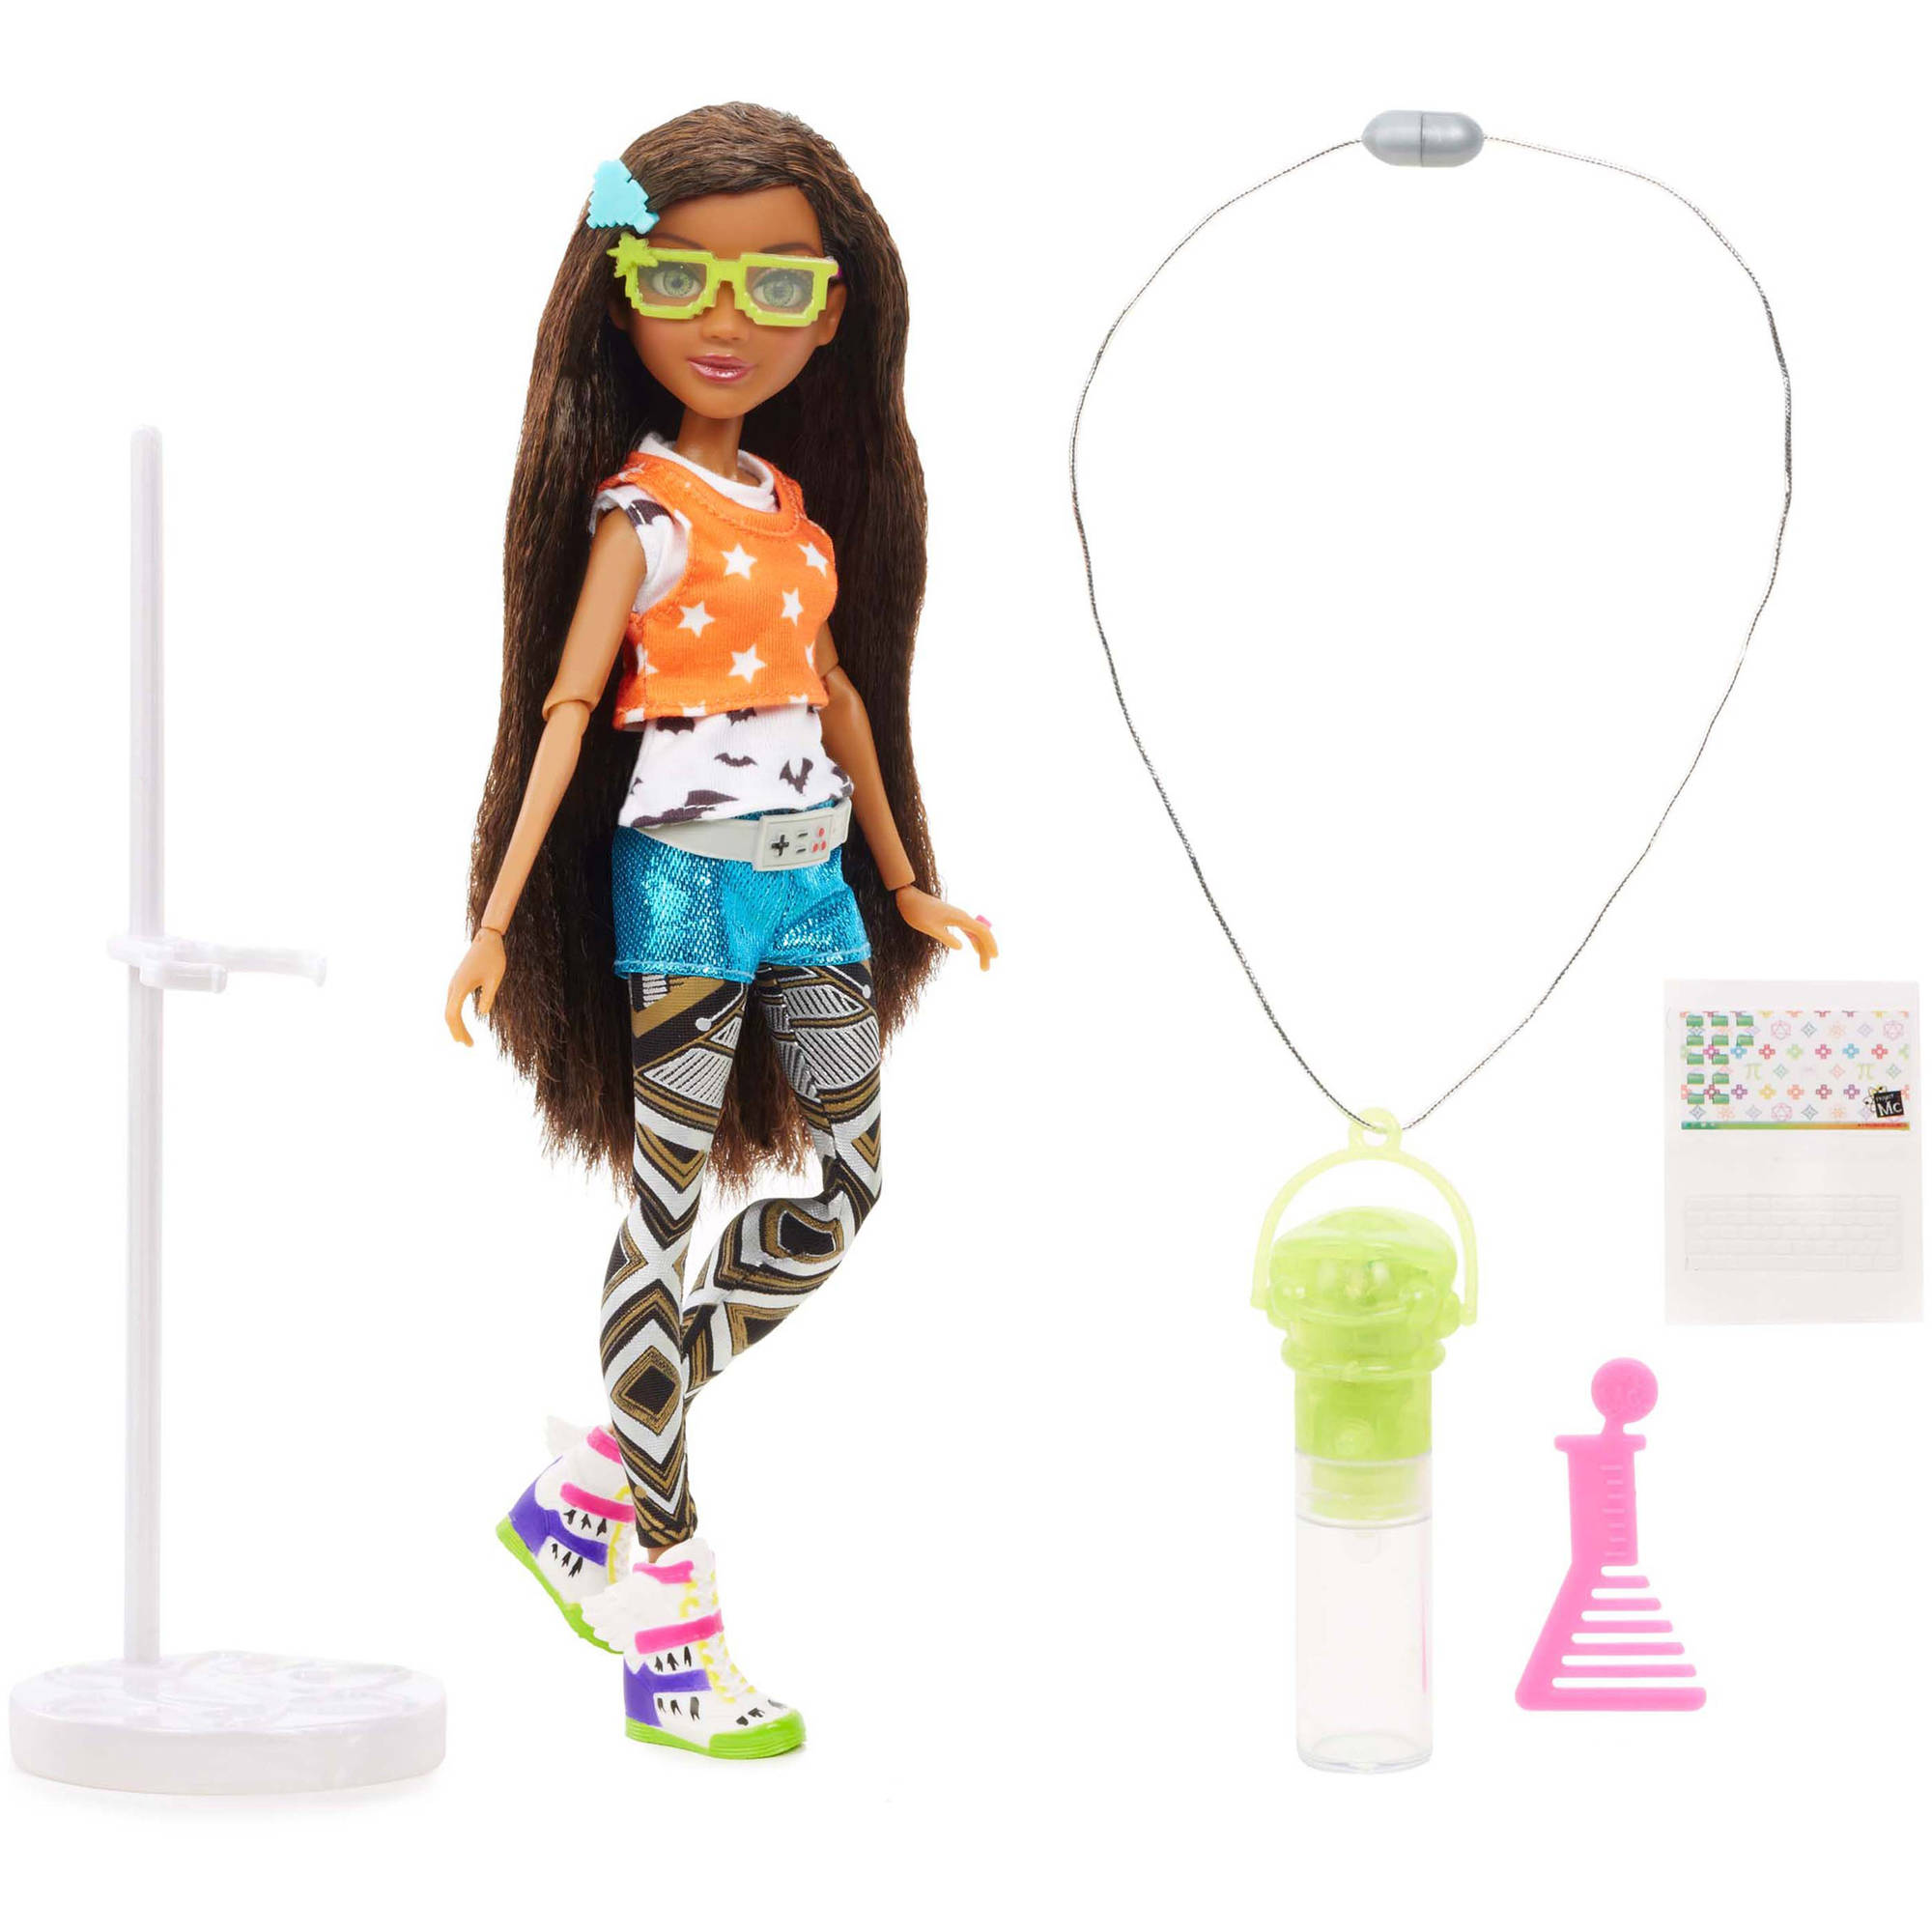 Project Mc2 Doll with Experiment, Bryden's Glow Stick